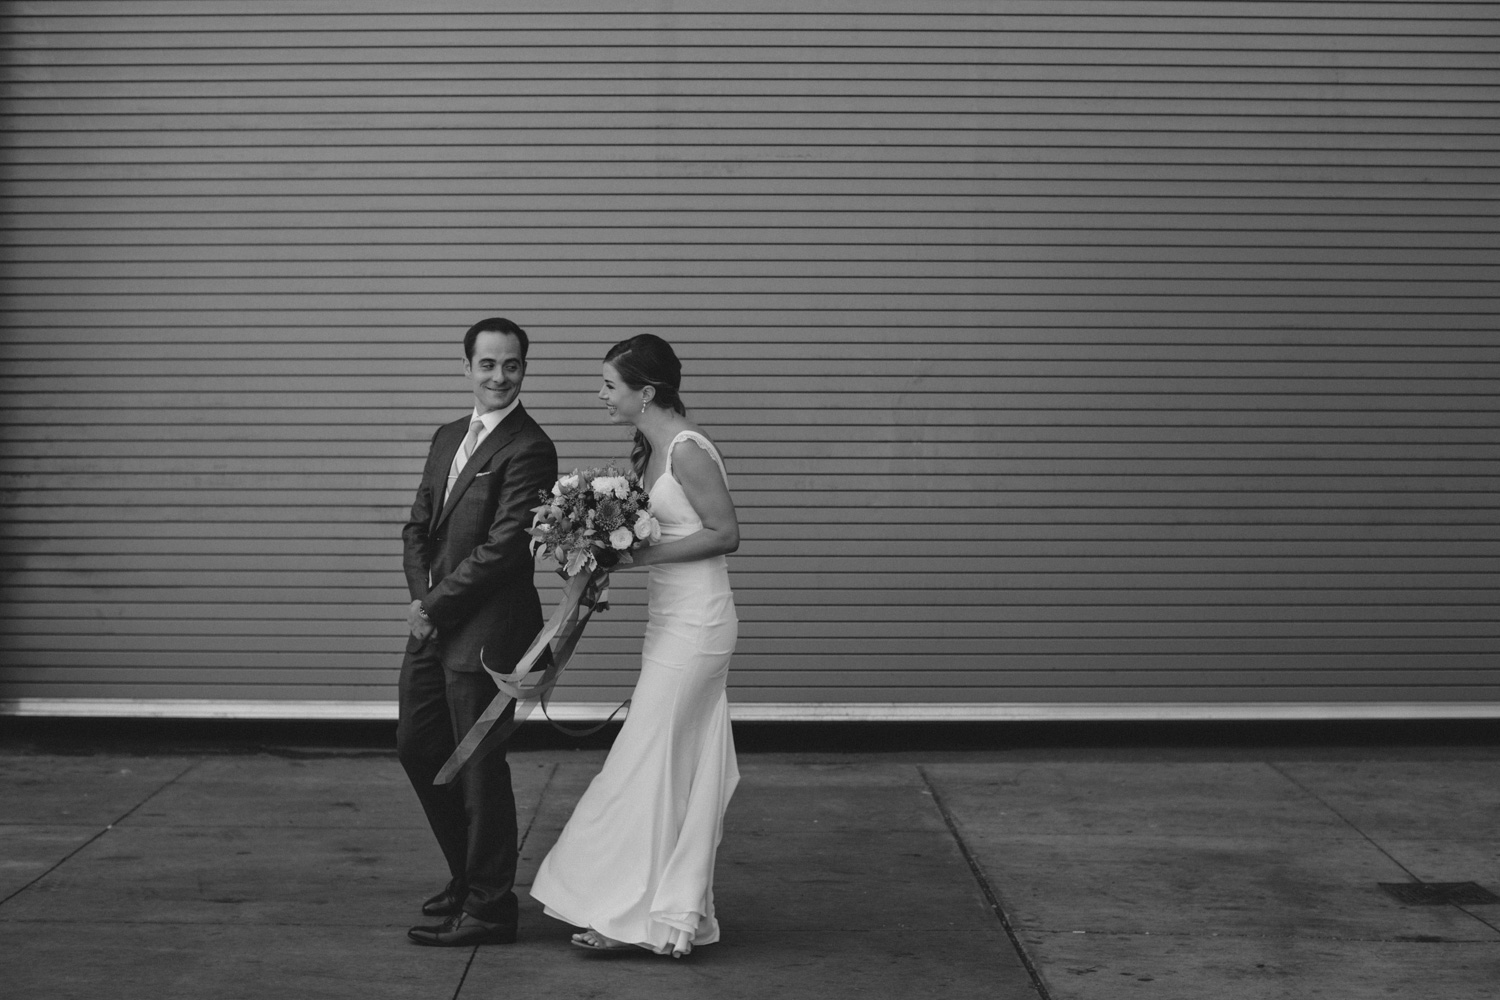 Steam-Whistle-Brewery-wedding-photos-Toronto-wedding-photography-by-Sam-Wong-of-Artanis-Collective_18.jpg